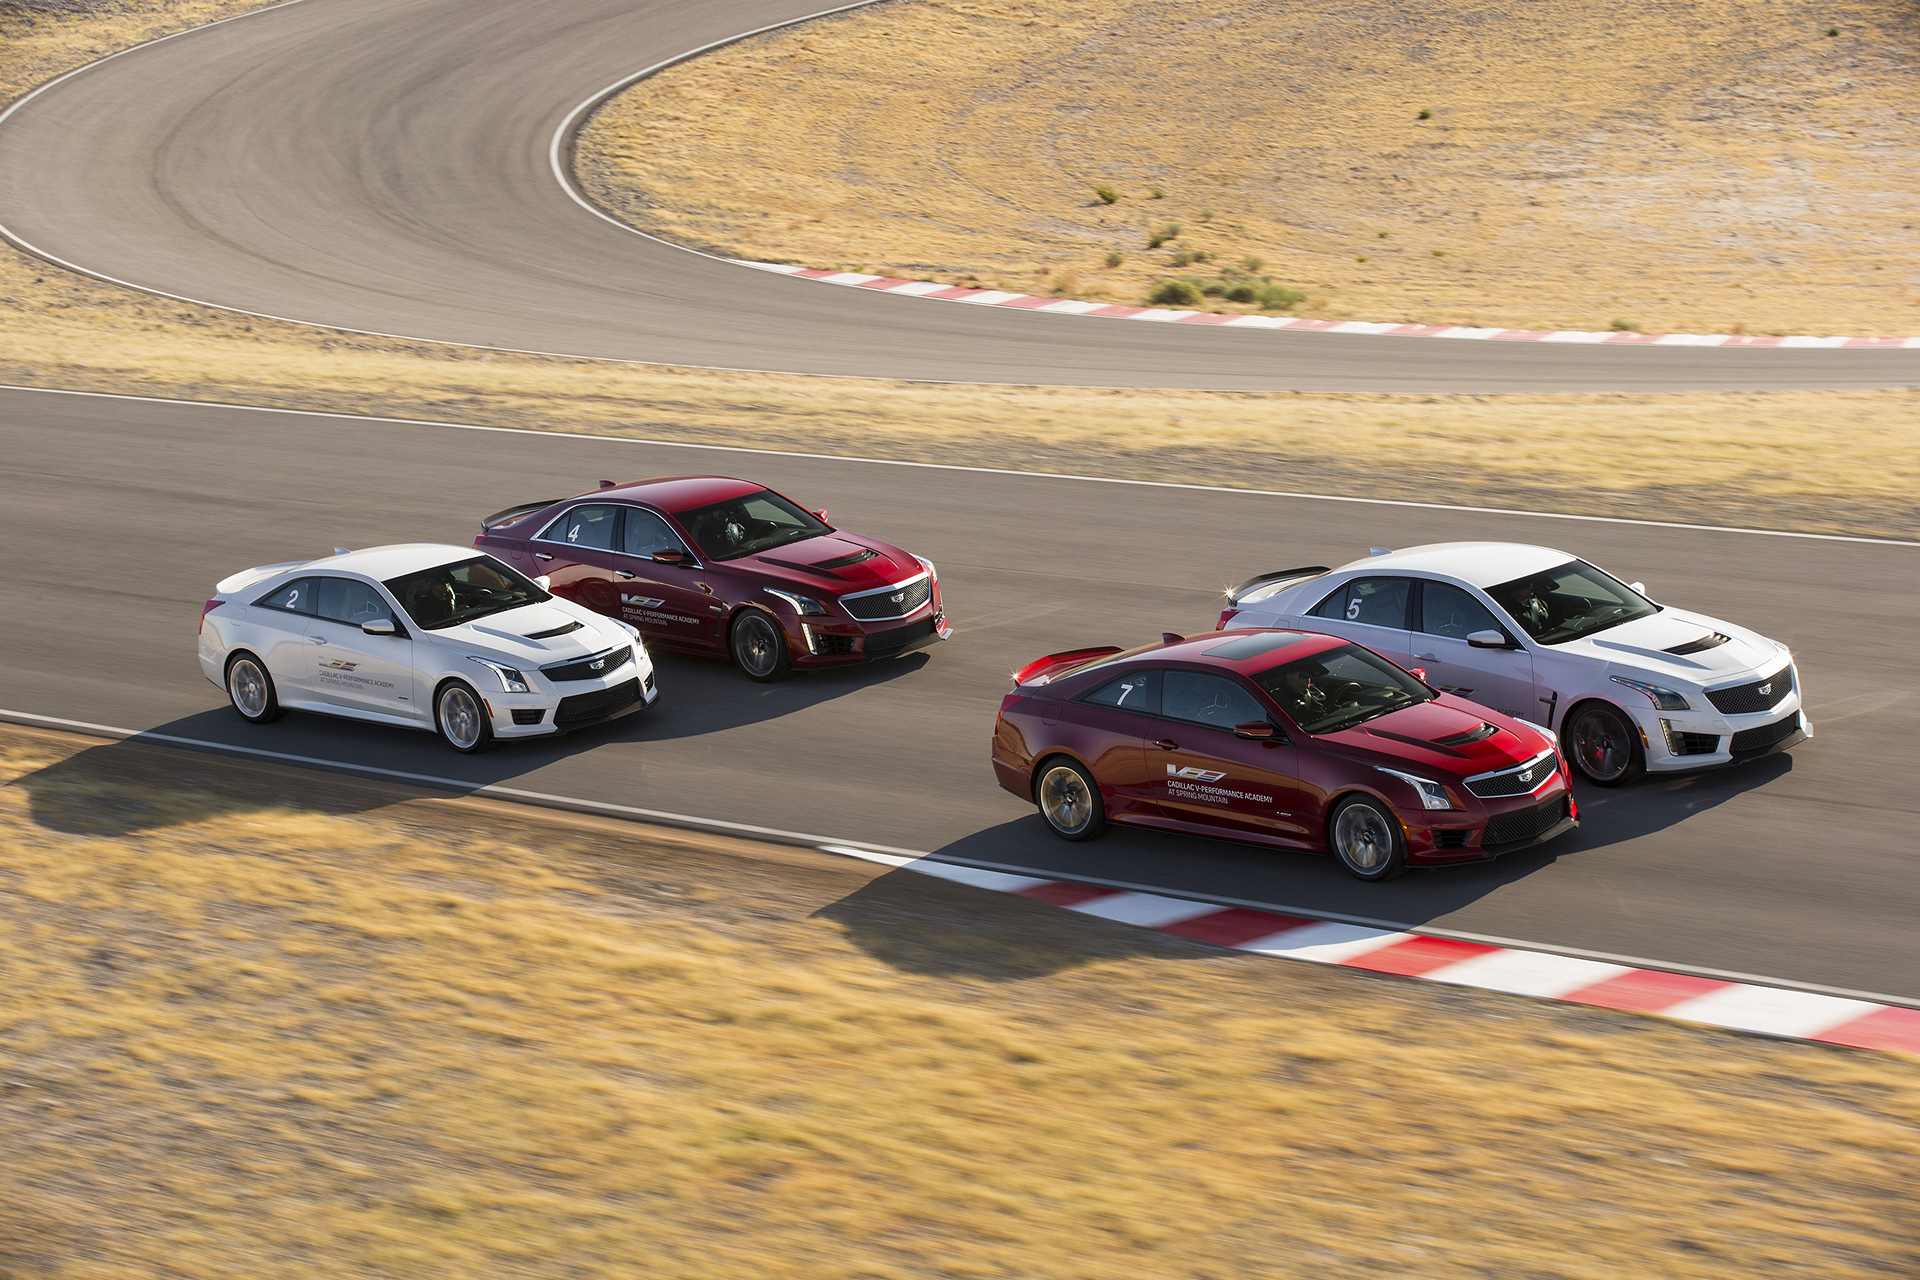 Introducing the Cadillac V-Performance Academy driving experience at Spring Mountain Motor Resort and Country Club near Las Vegas, NV © General Motors